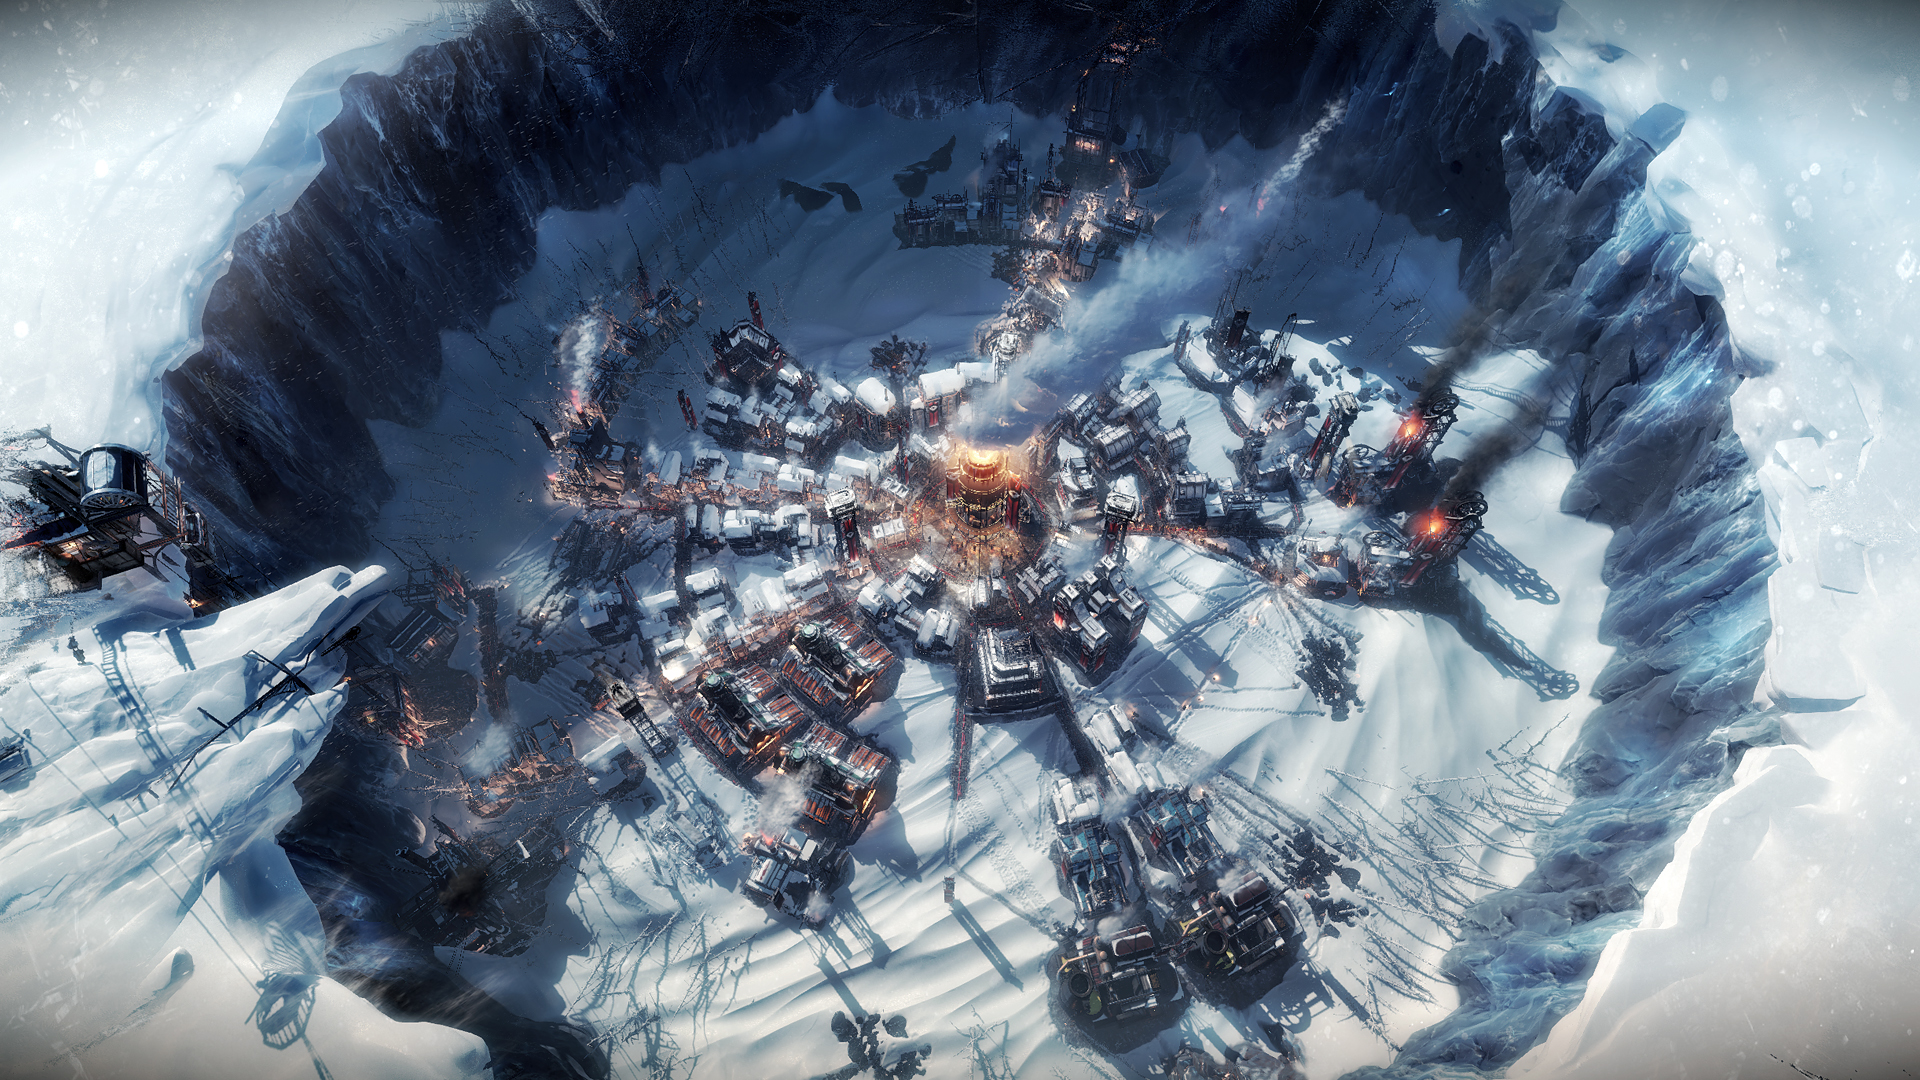 GamesBeat Latest																							 							Frostpunk's brutal tale of survival begins on April 24